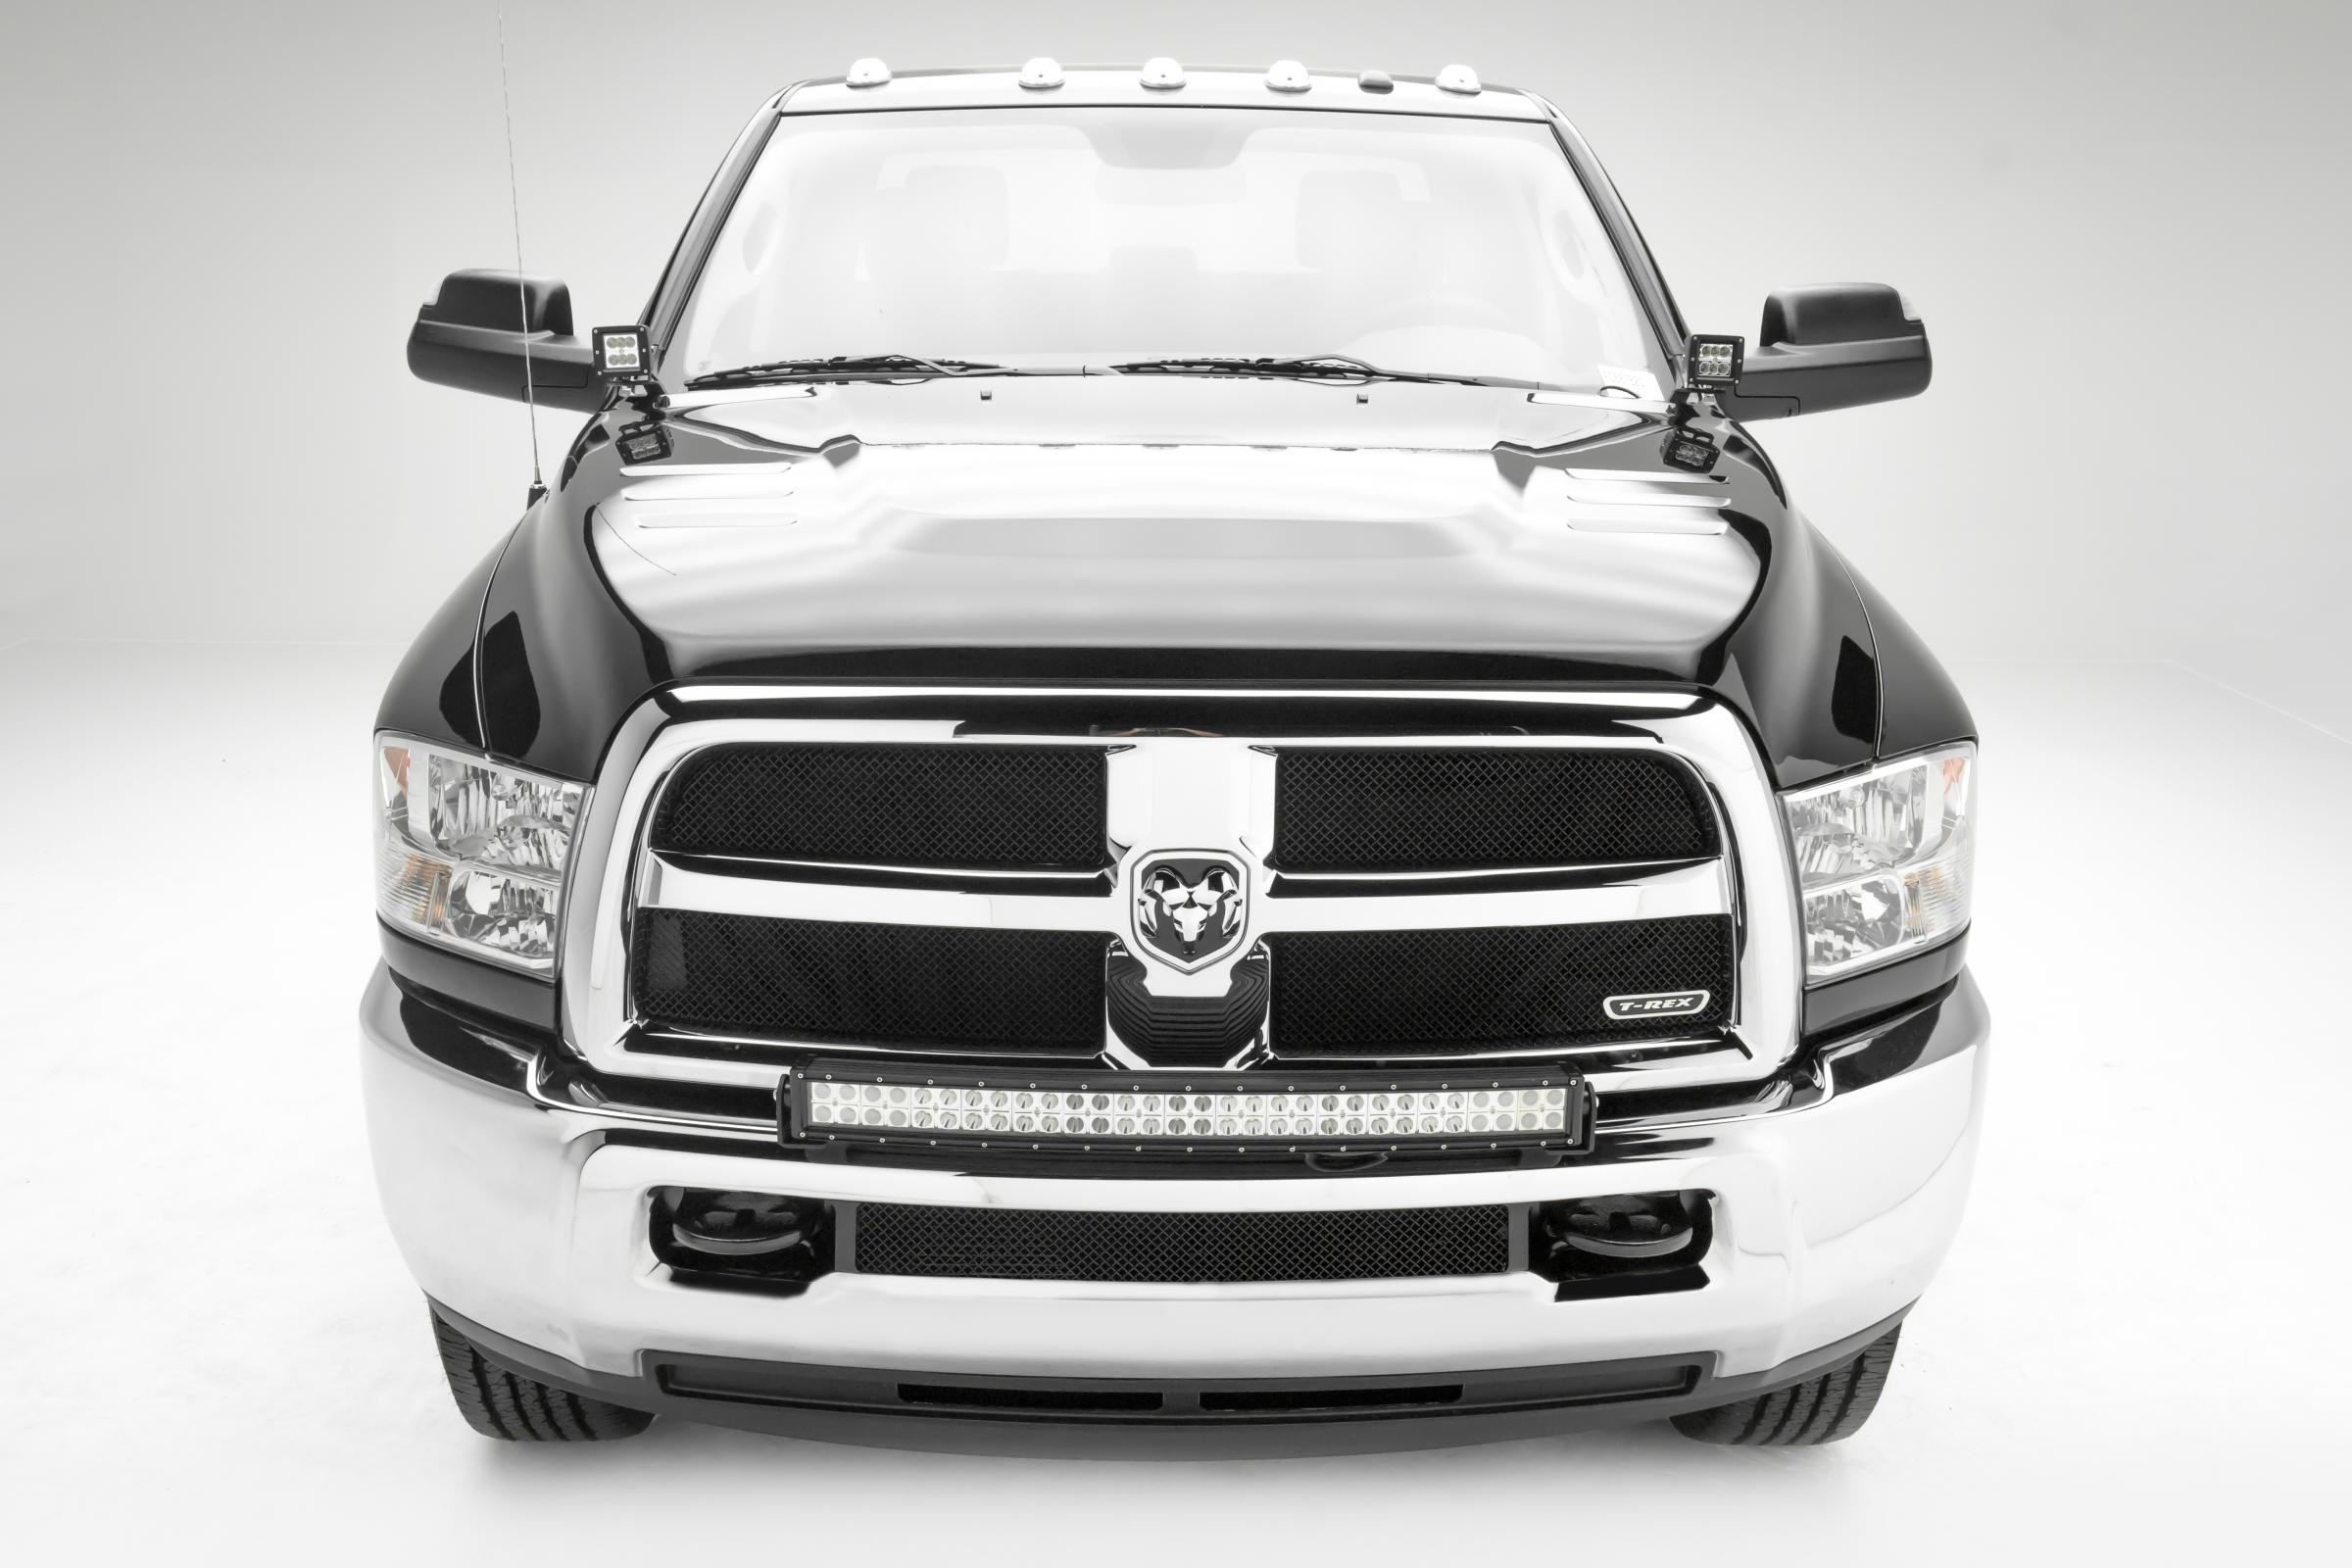 Front Bumper Top Led Light Bar Mount Kit 10 18 Dodge Ram 2500 3500 W Wiring Harness View The Full Image